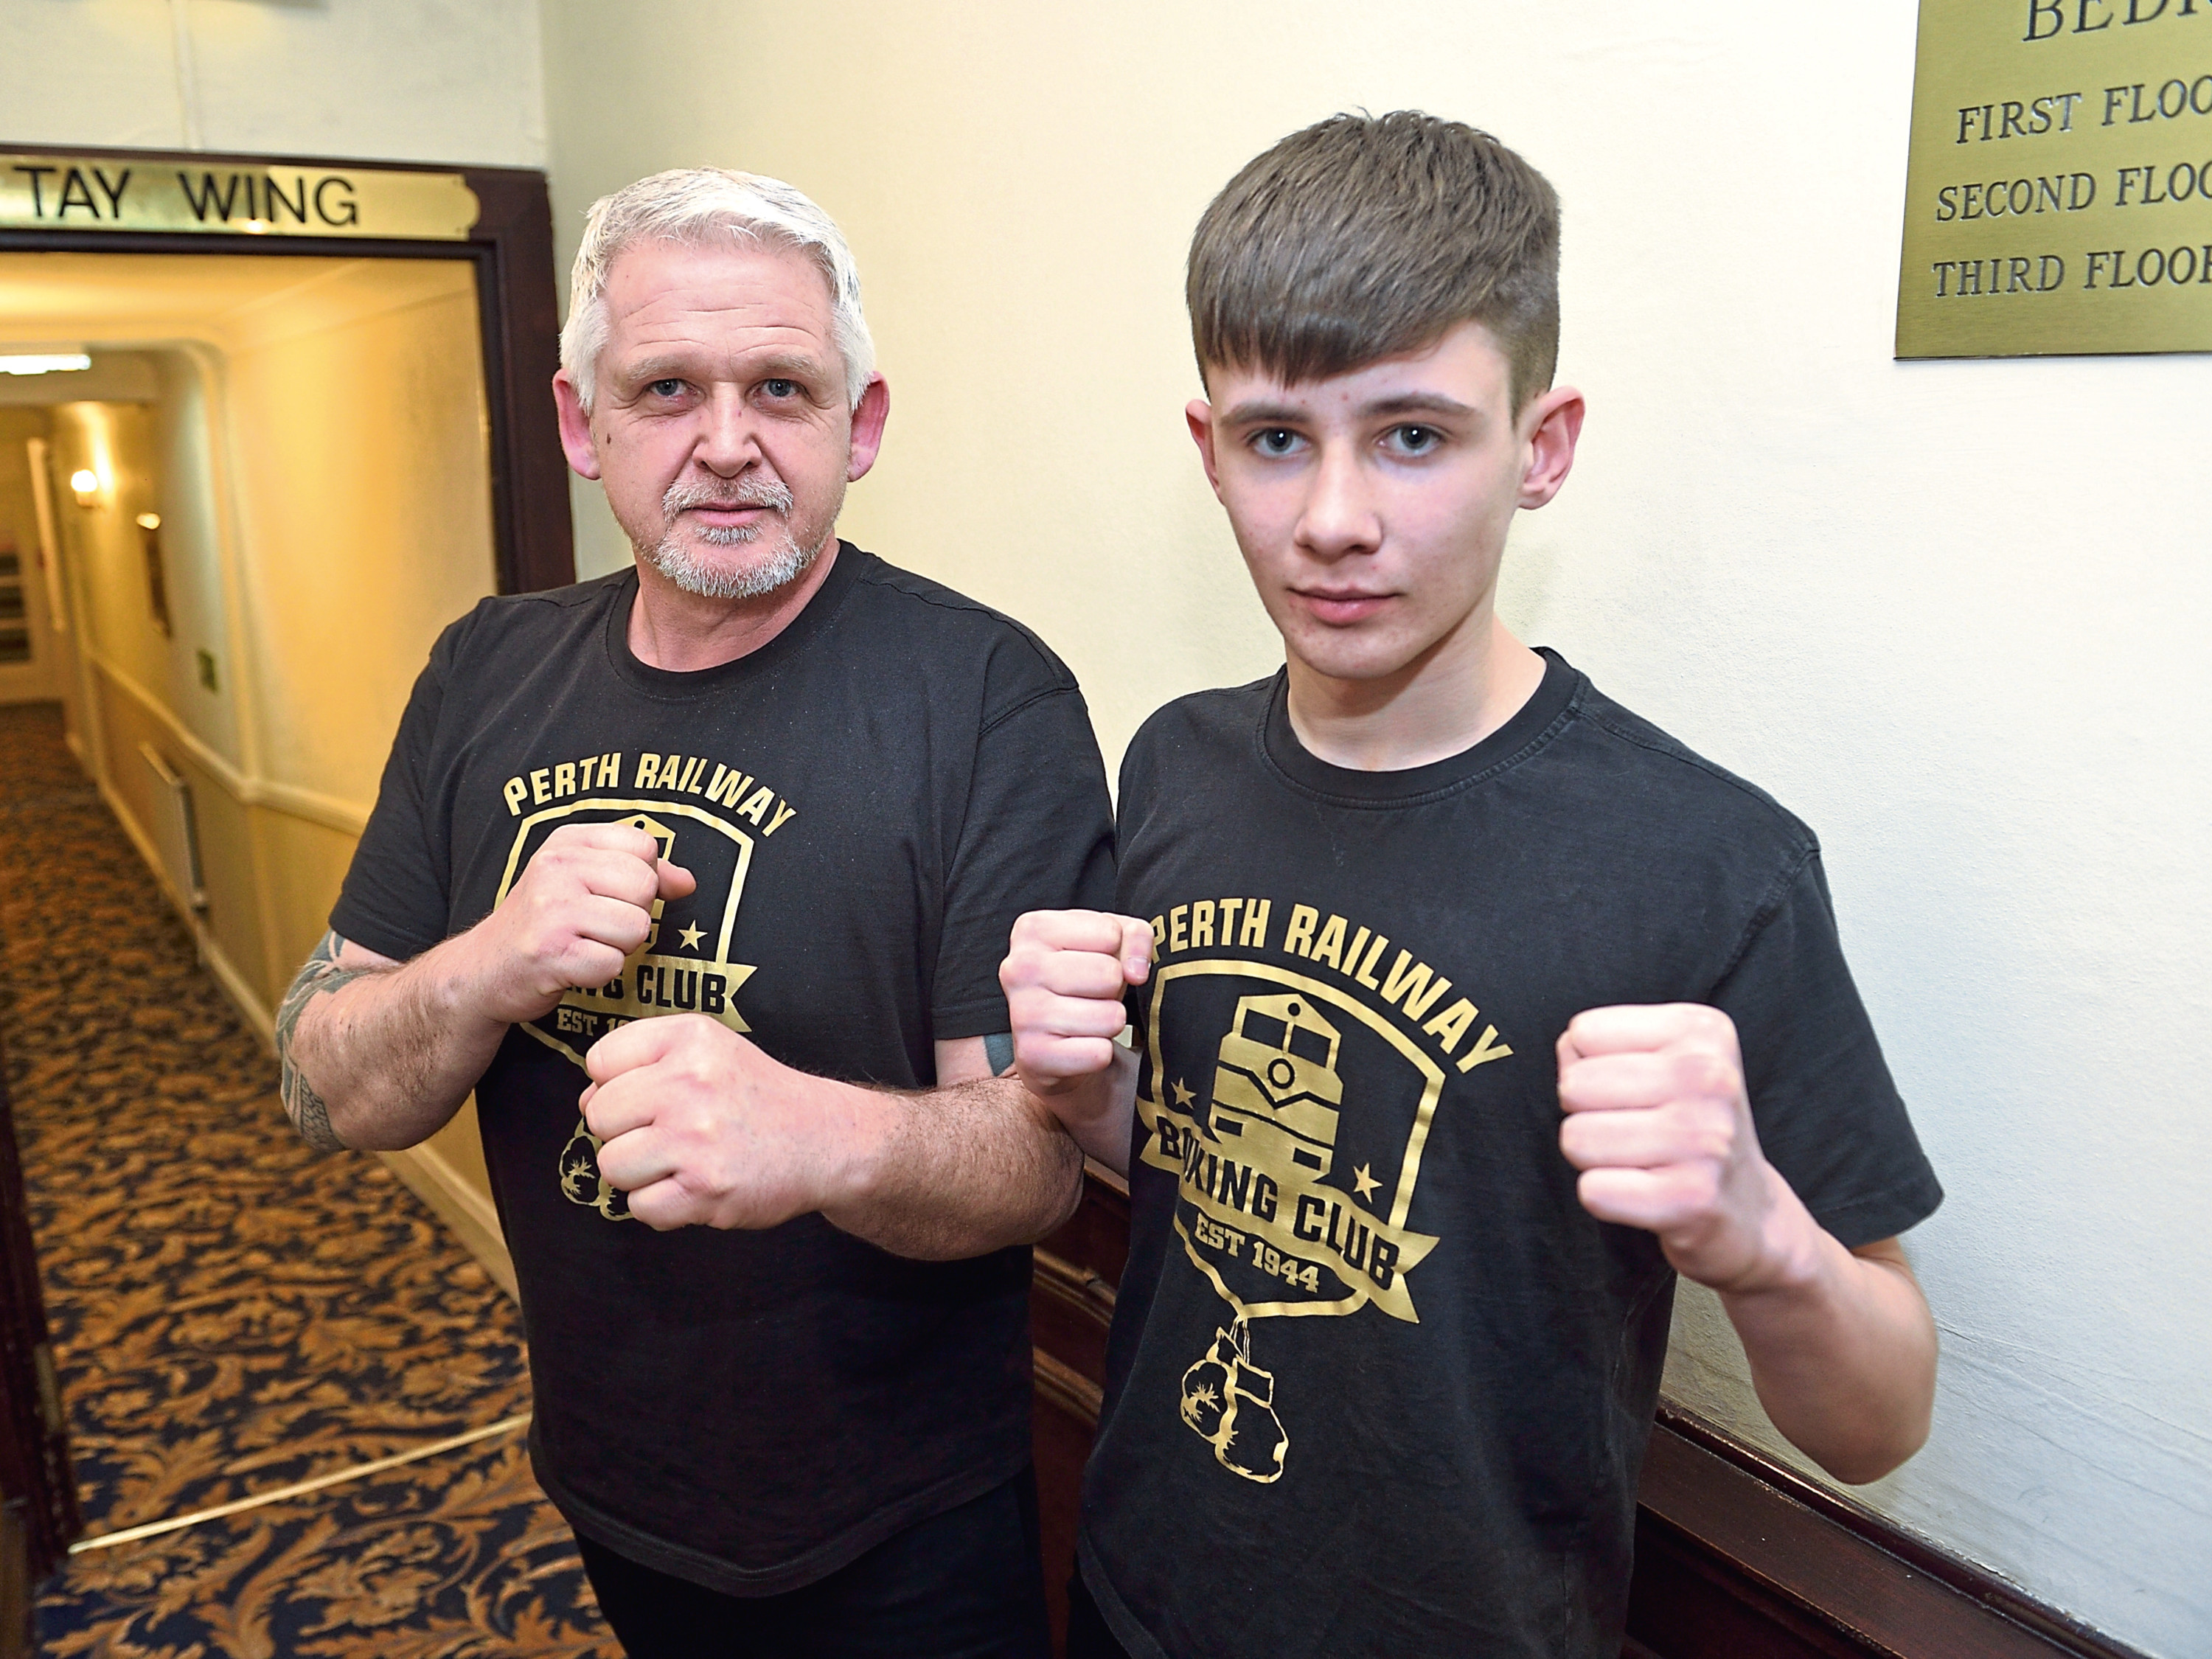 Perth Railway boxer Finn Scott and his coach, dad Gordon